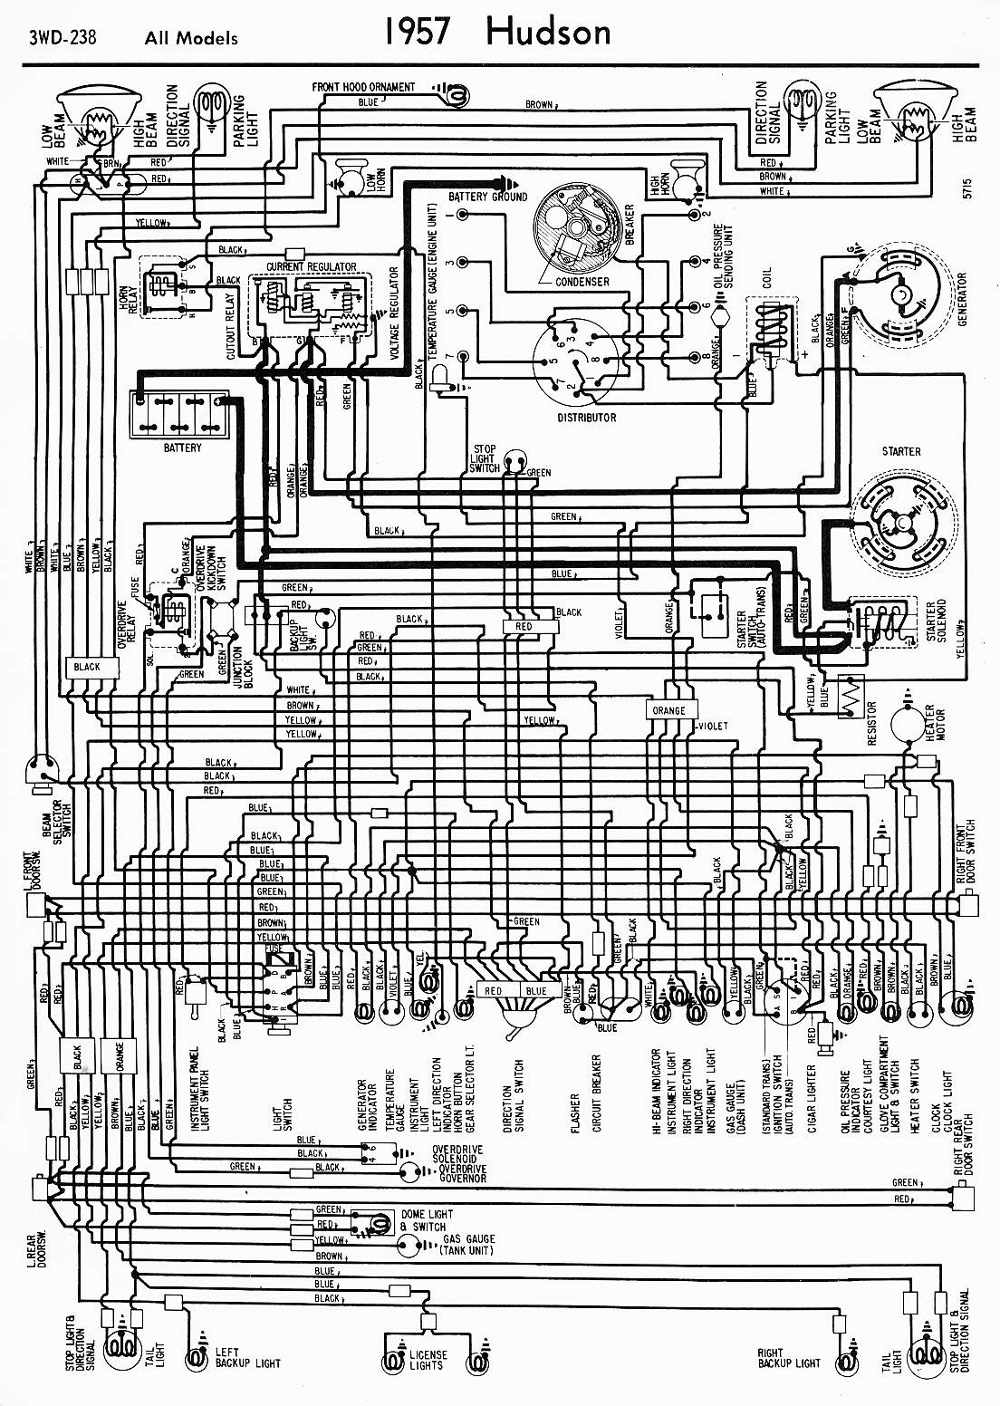 hight resolution of wiring diagrams of 1957 hudson all models wiring diagram home wiring diagram of 1957 ford 6 all models